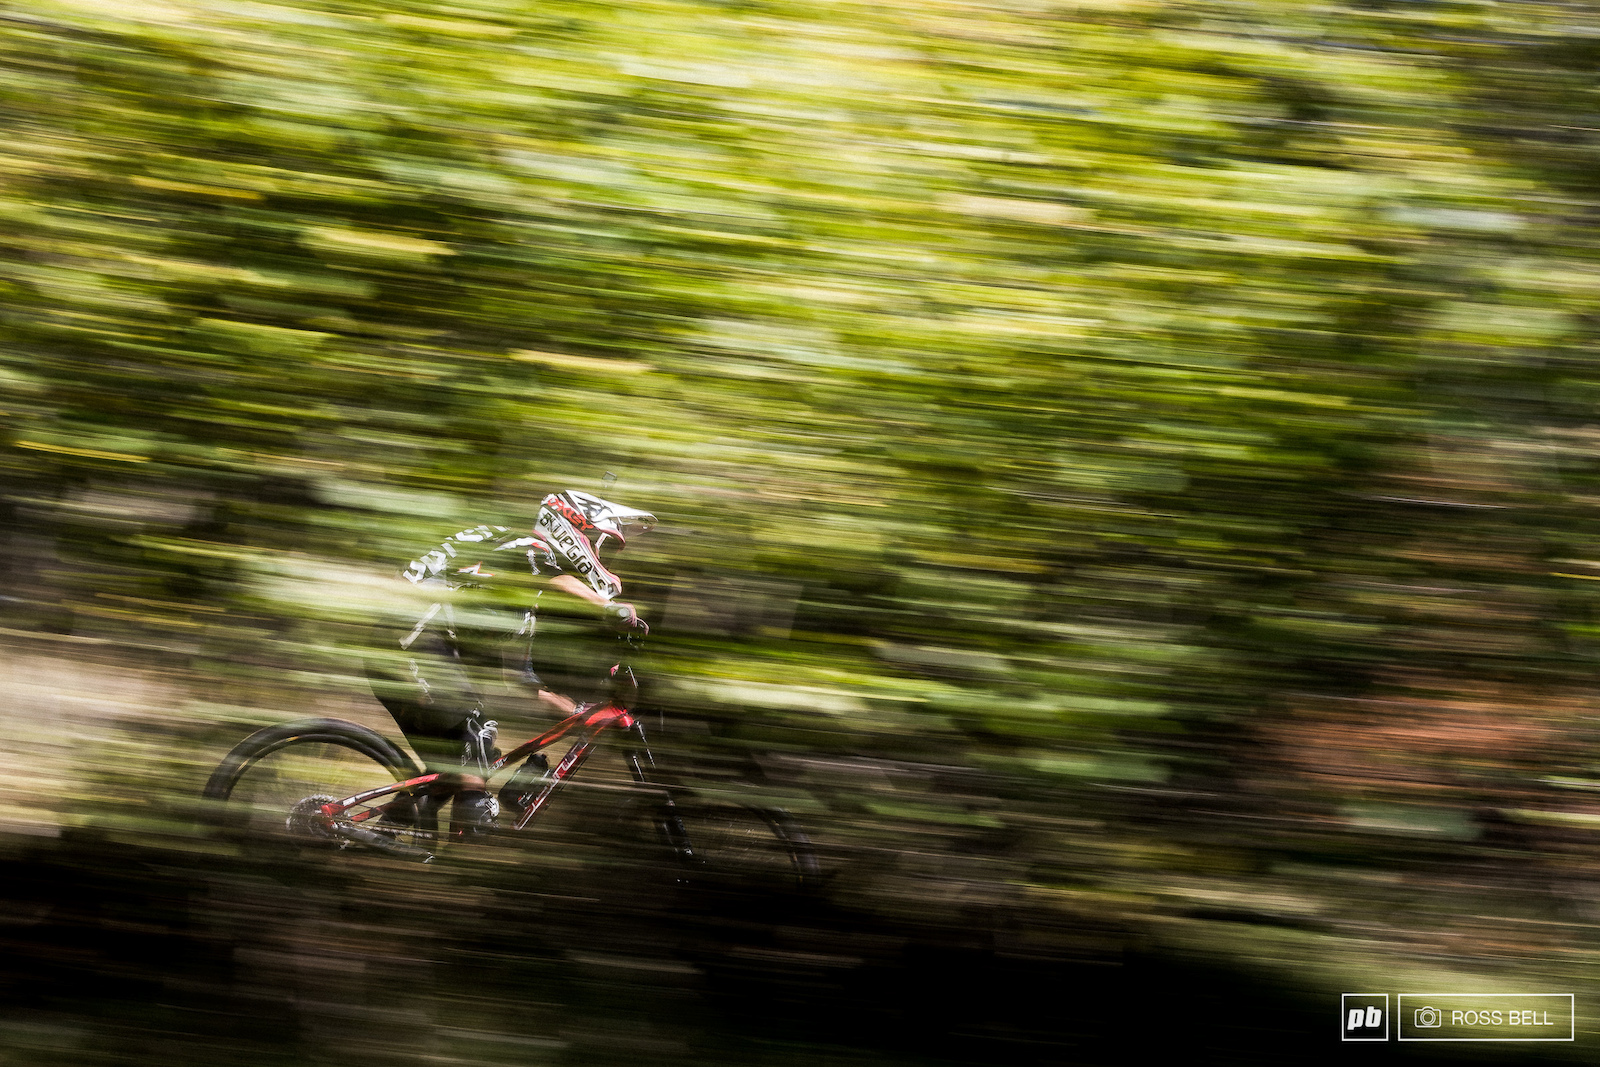 Isabeau Courdurier darting through the beech trees in Finale Ligure a couple of seasons ago.